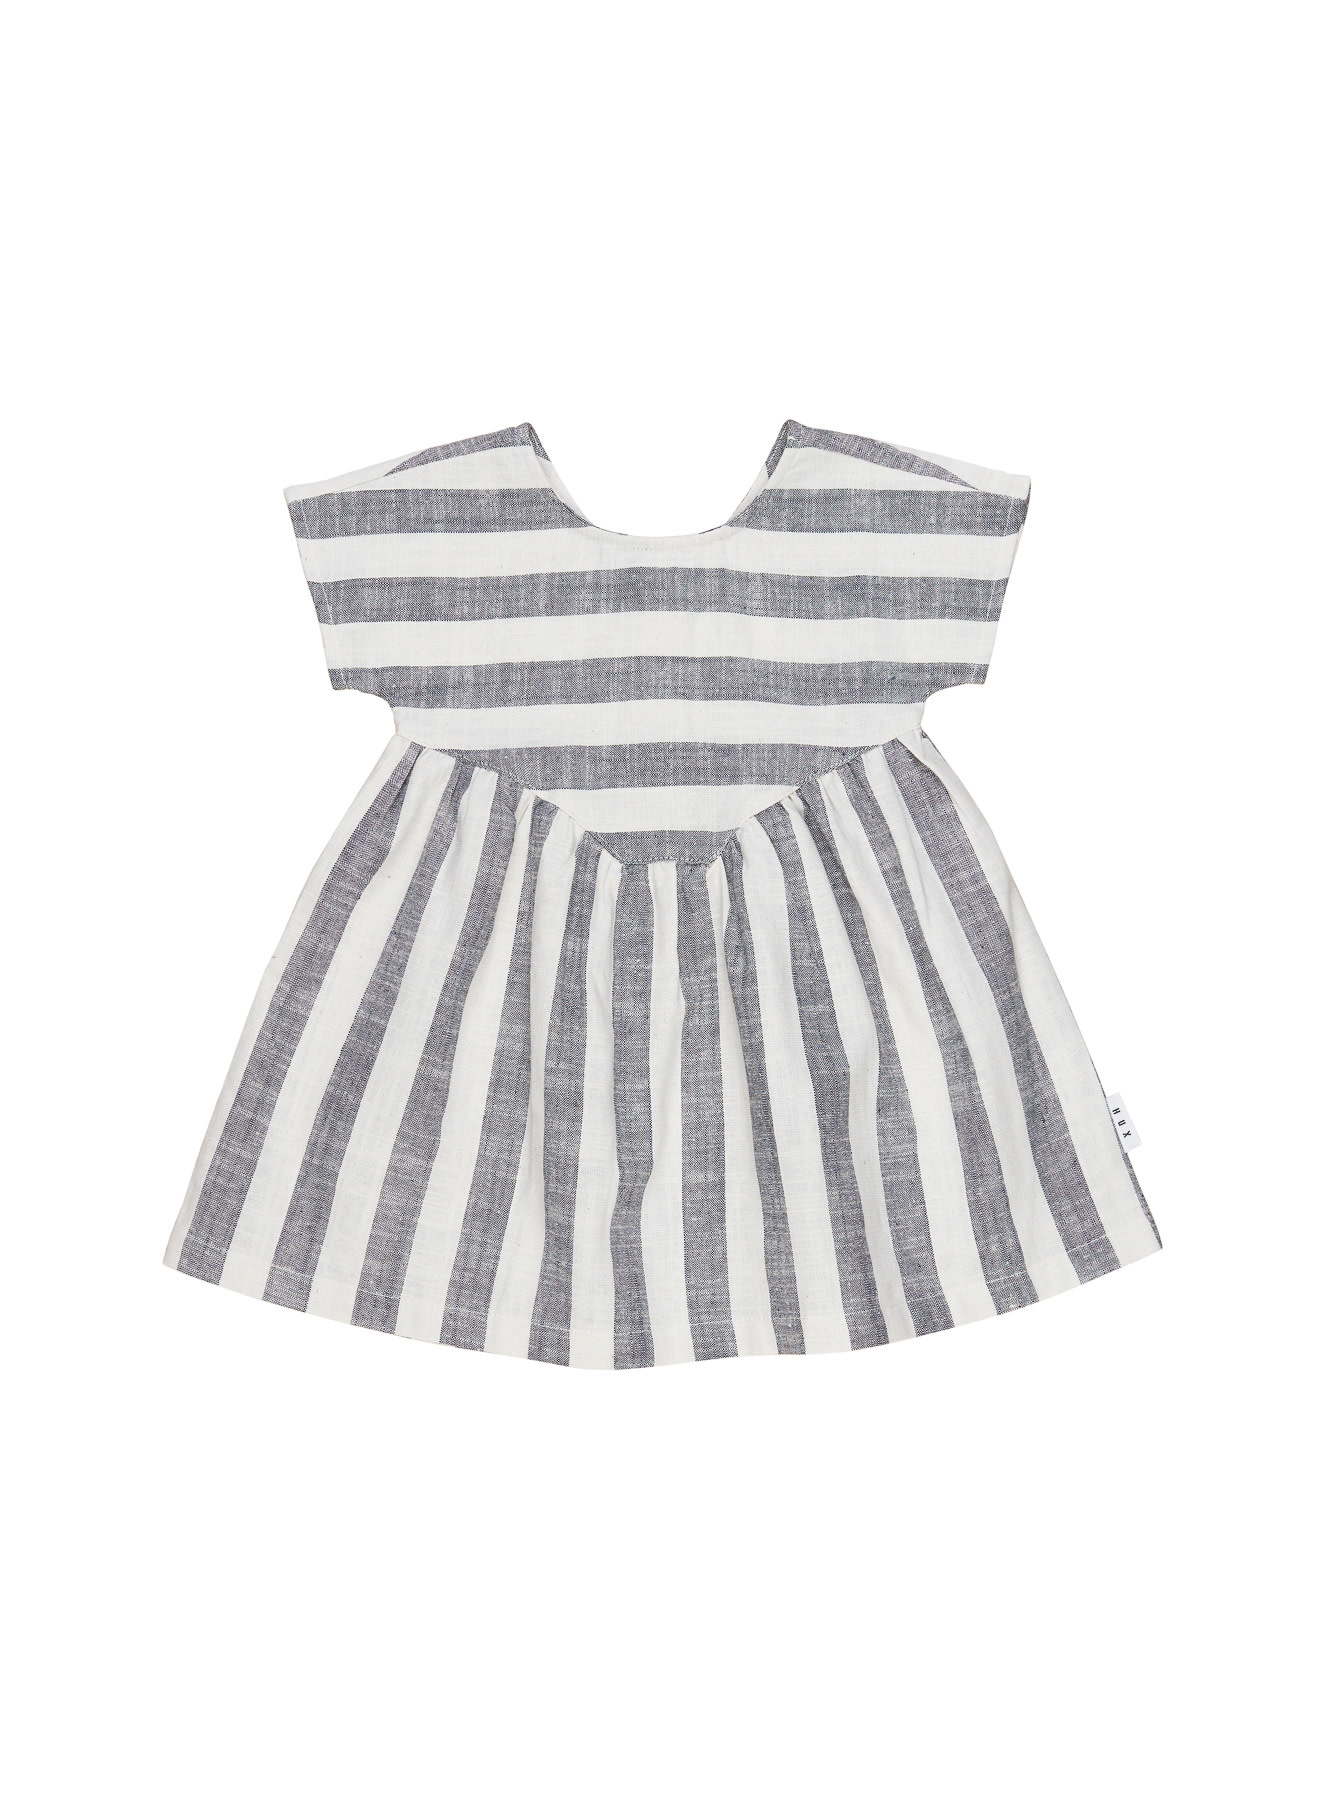 HUX BABY Stripe Yoke Dress